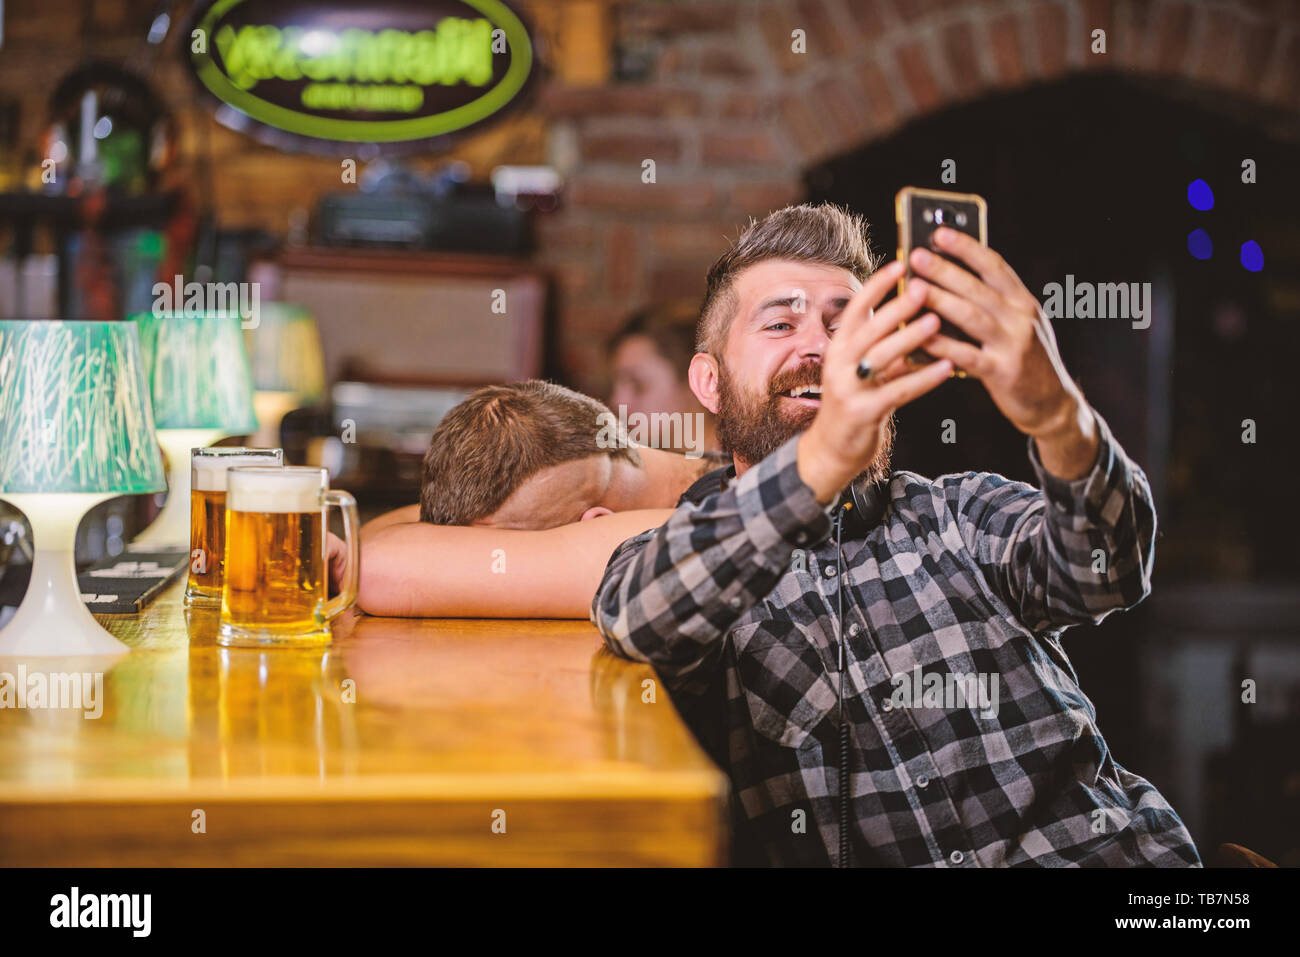 Man in bar drinking beer. Take selfie photo to remember great evening in pub. Man bearded hipster hold smartphone. Taking selfie concept. Online communication. Send selfie to friends social networks. - Stock Image